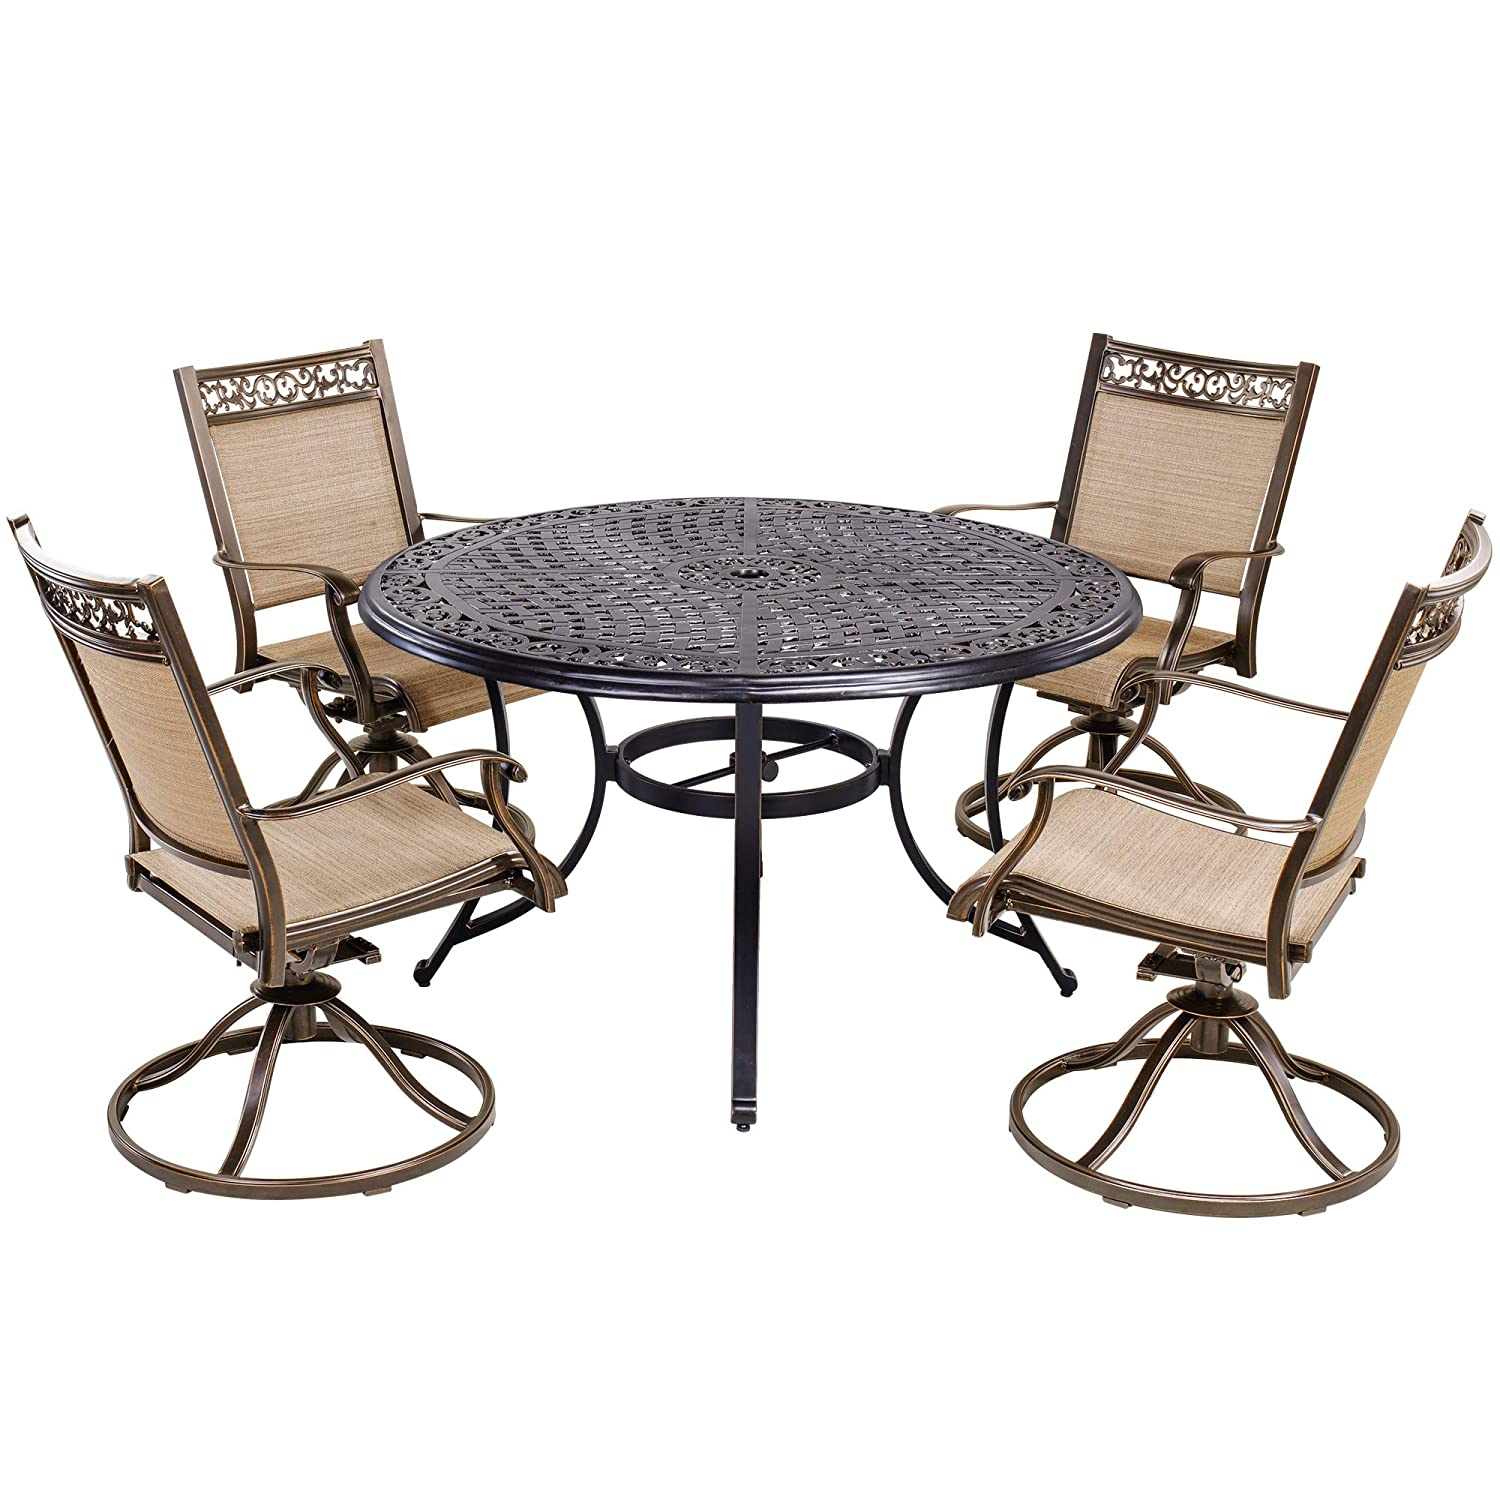 dali 5 Piece Patio Dining Set Outdoor Furniture, Aluminum Swivel Rocker Chair Sling Chair Set with 48 inch Round Alum Casting Table